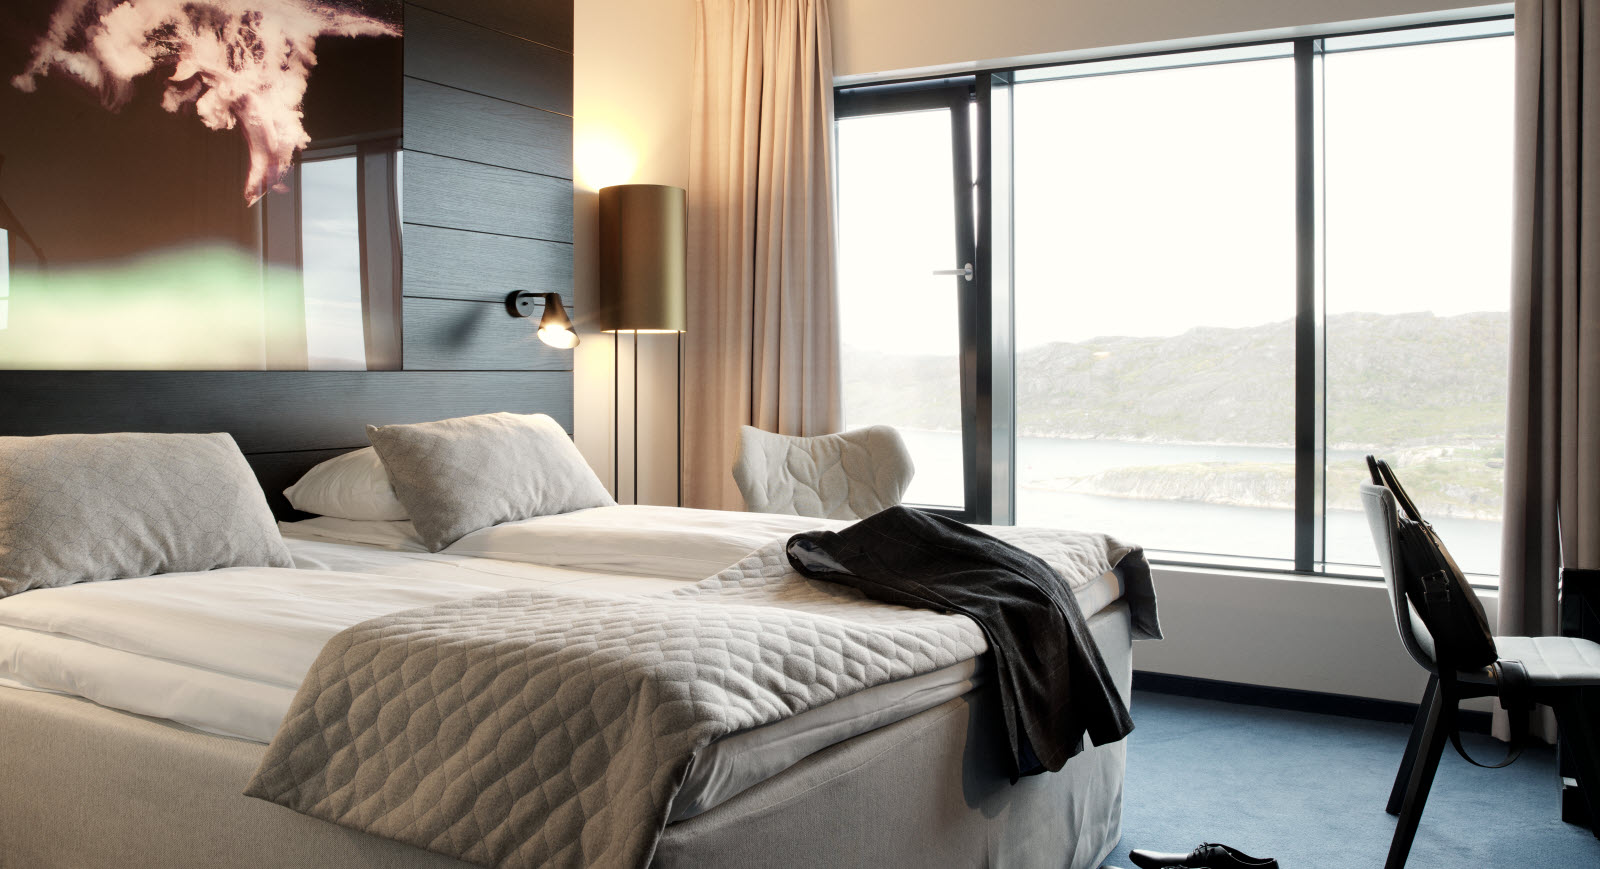 scandic-havet-room-superior-1.jpg